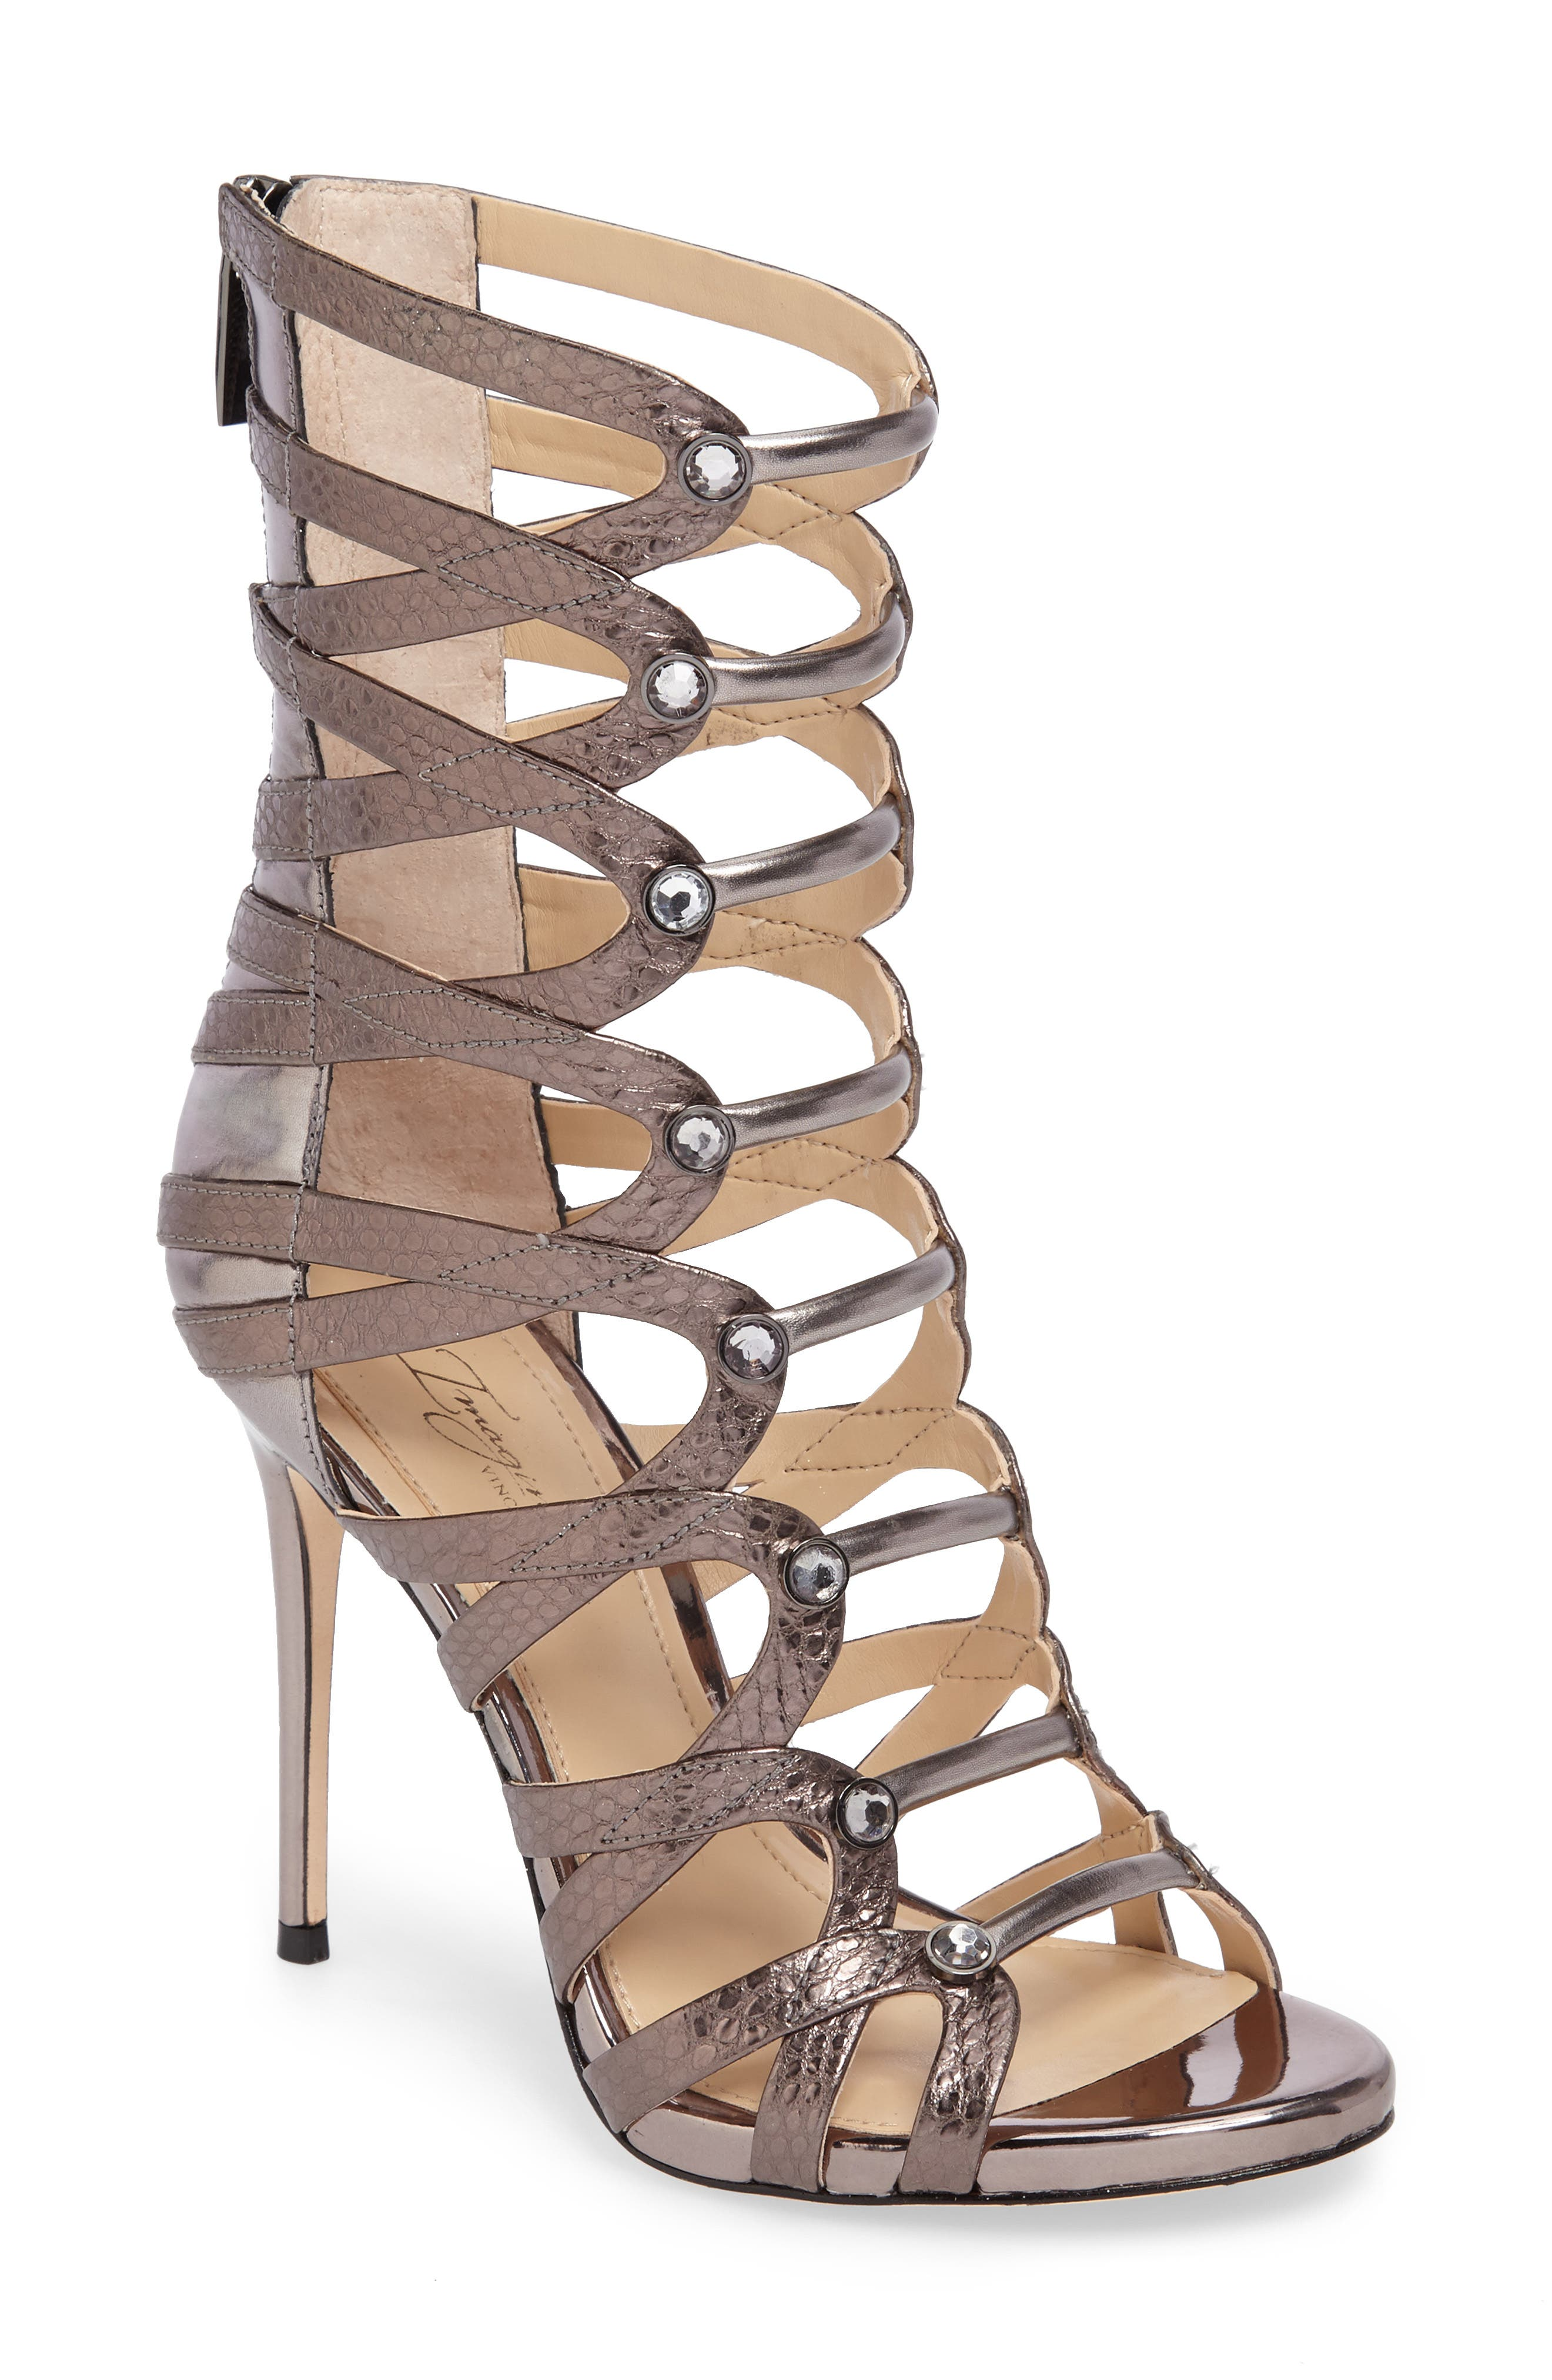 Alternate Image 1 Selected - Imagine by Vince Camuto Dalany Sandal (Women)